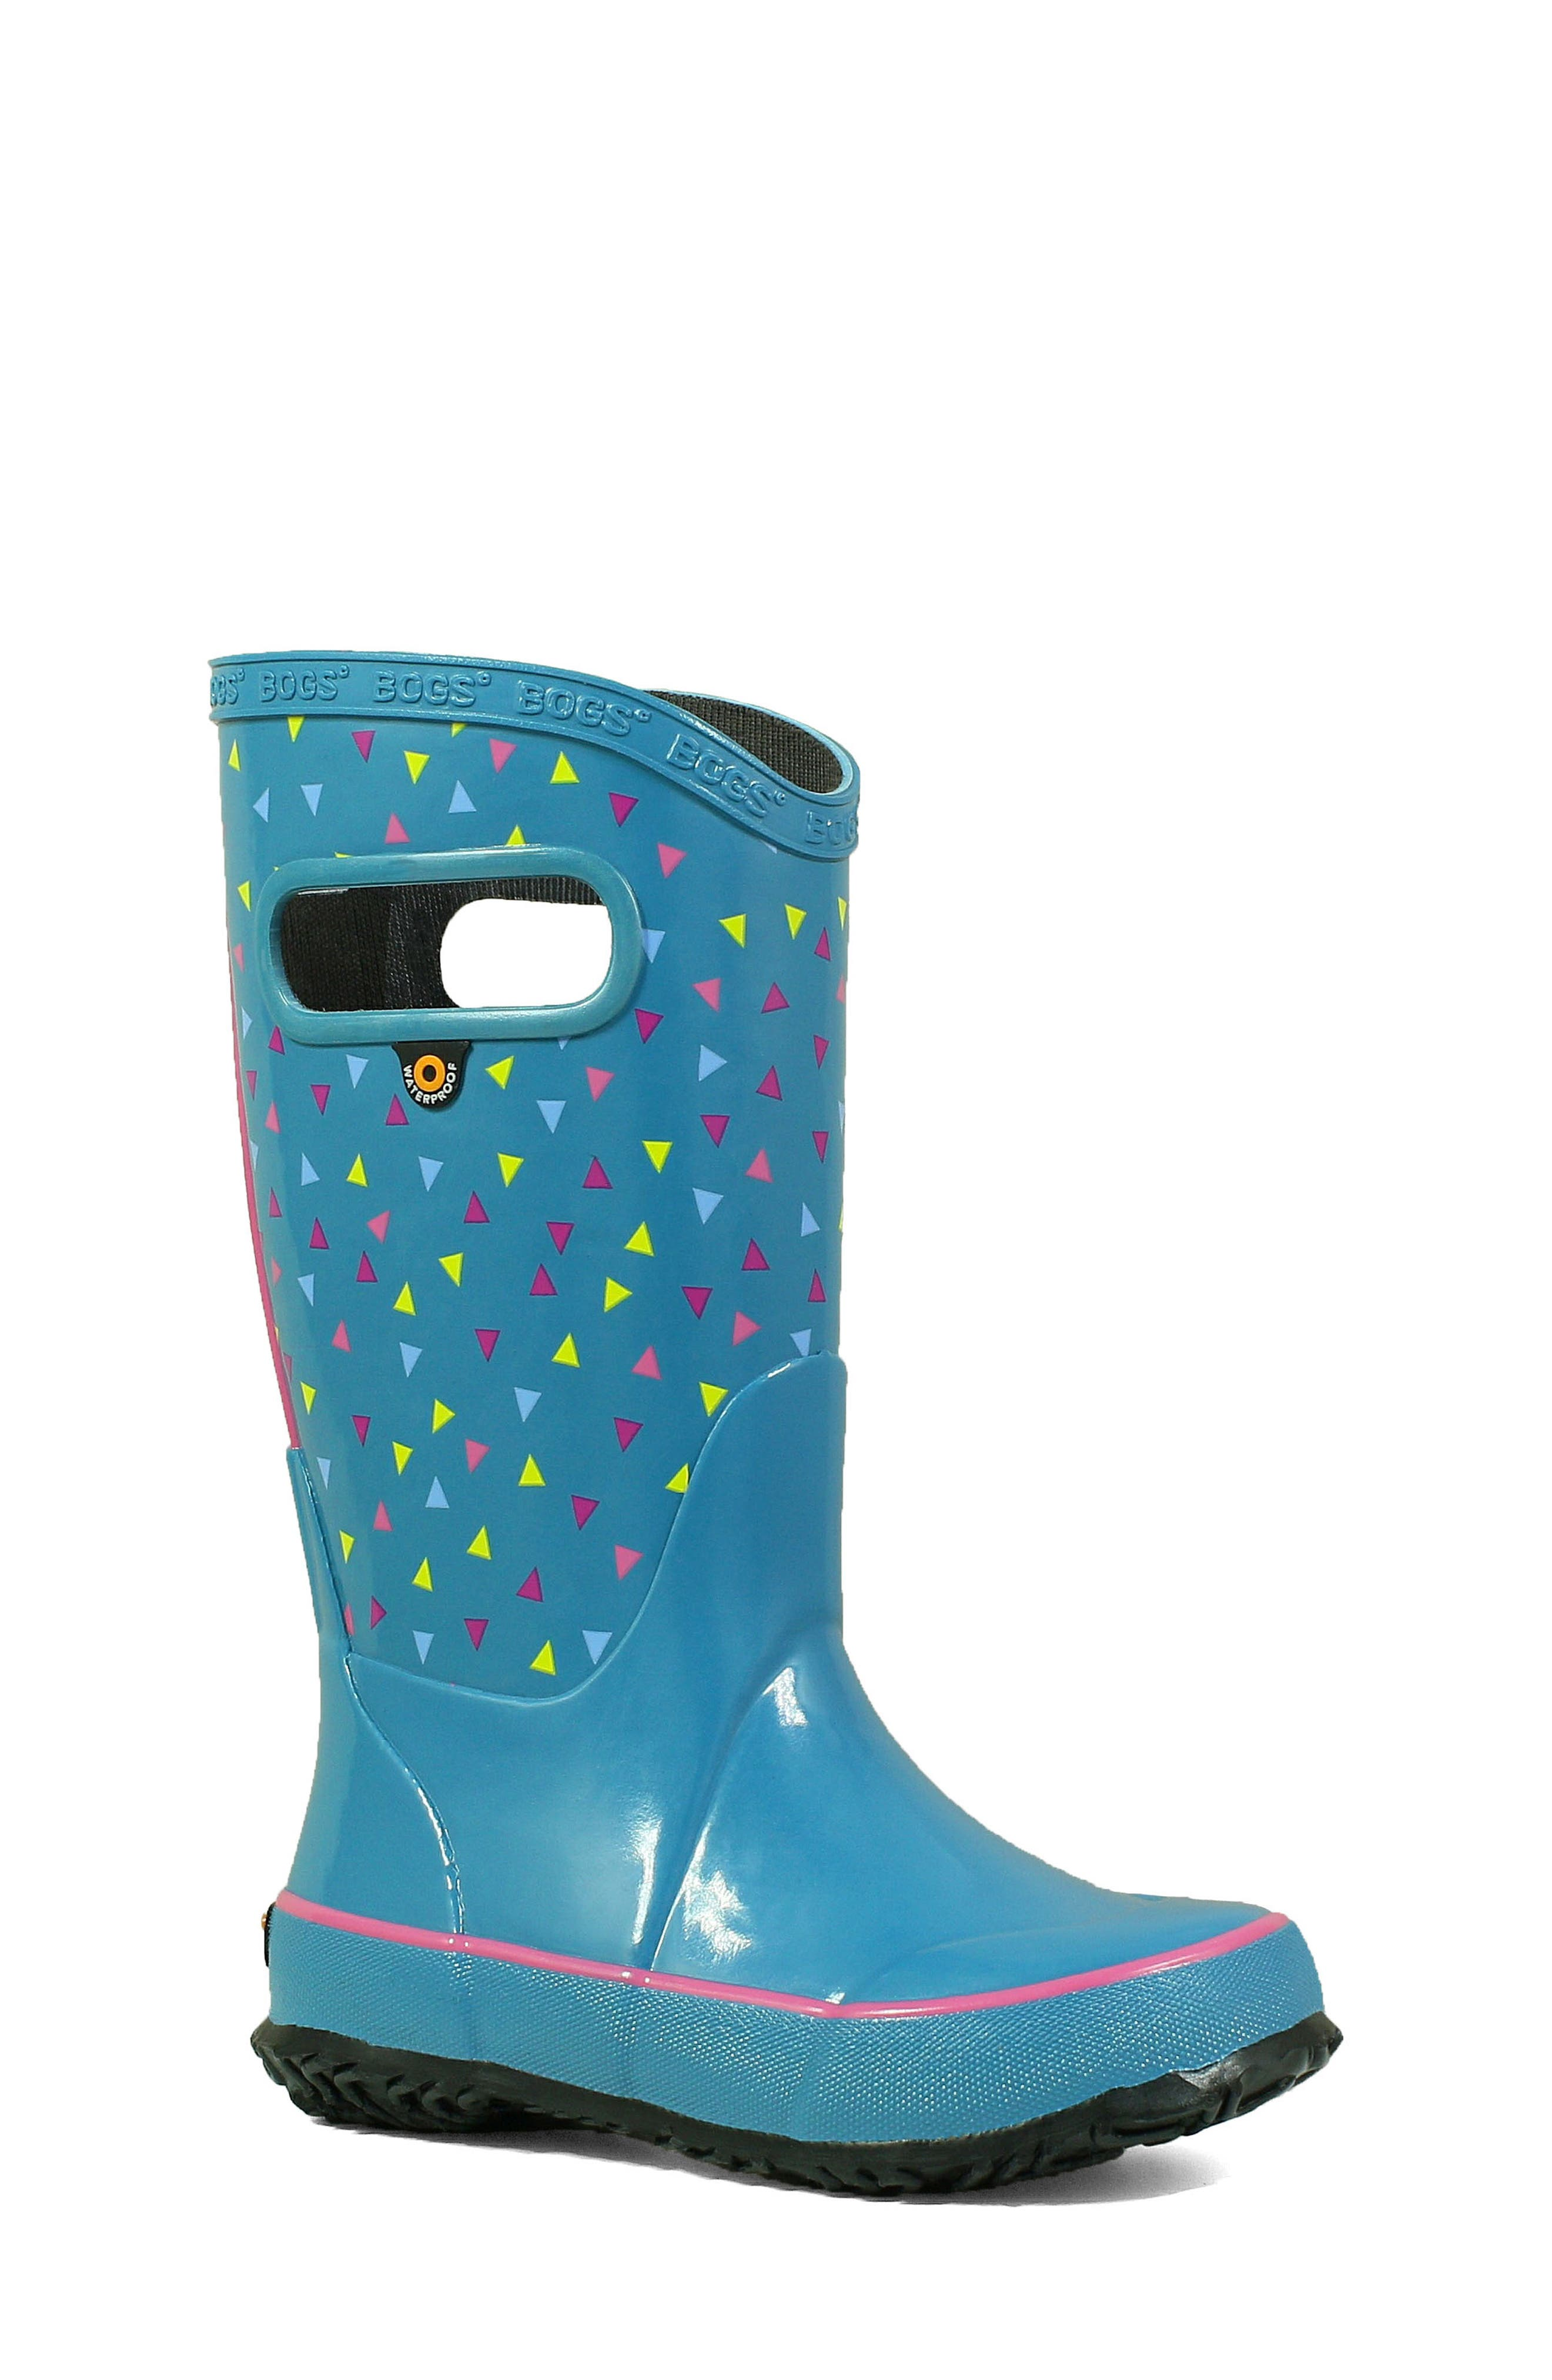 Bogs Dots Waterproof Rain Boot